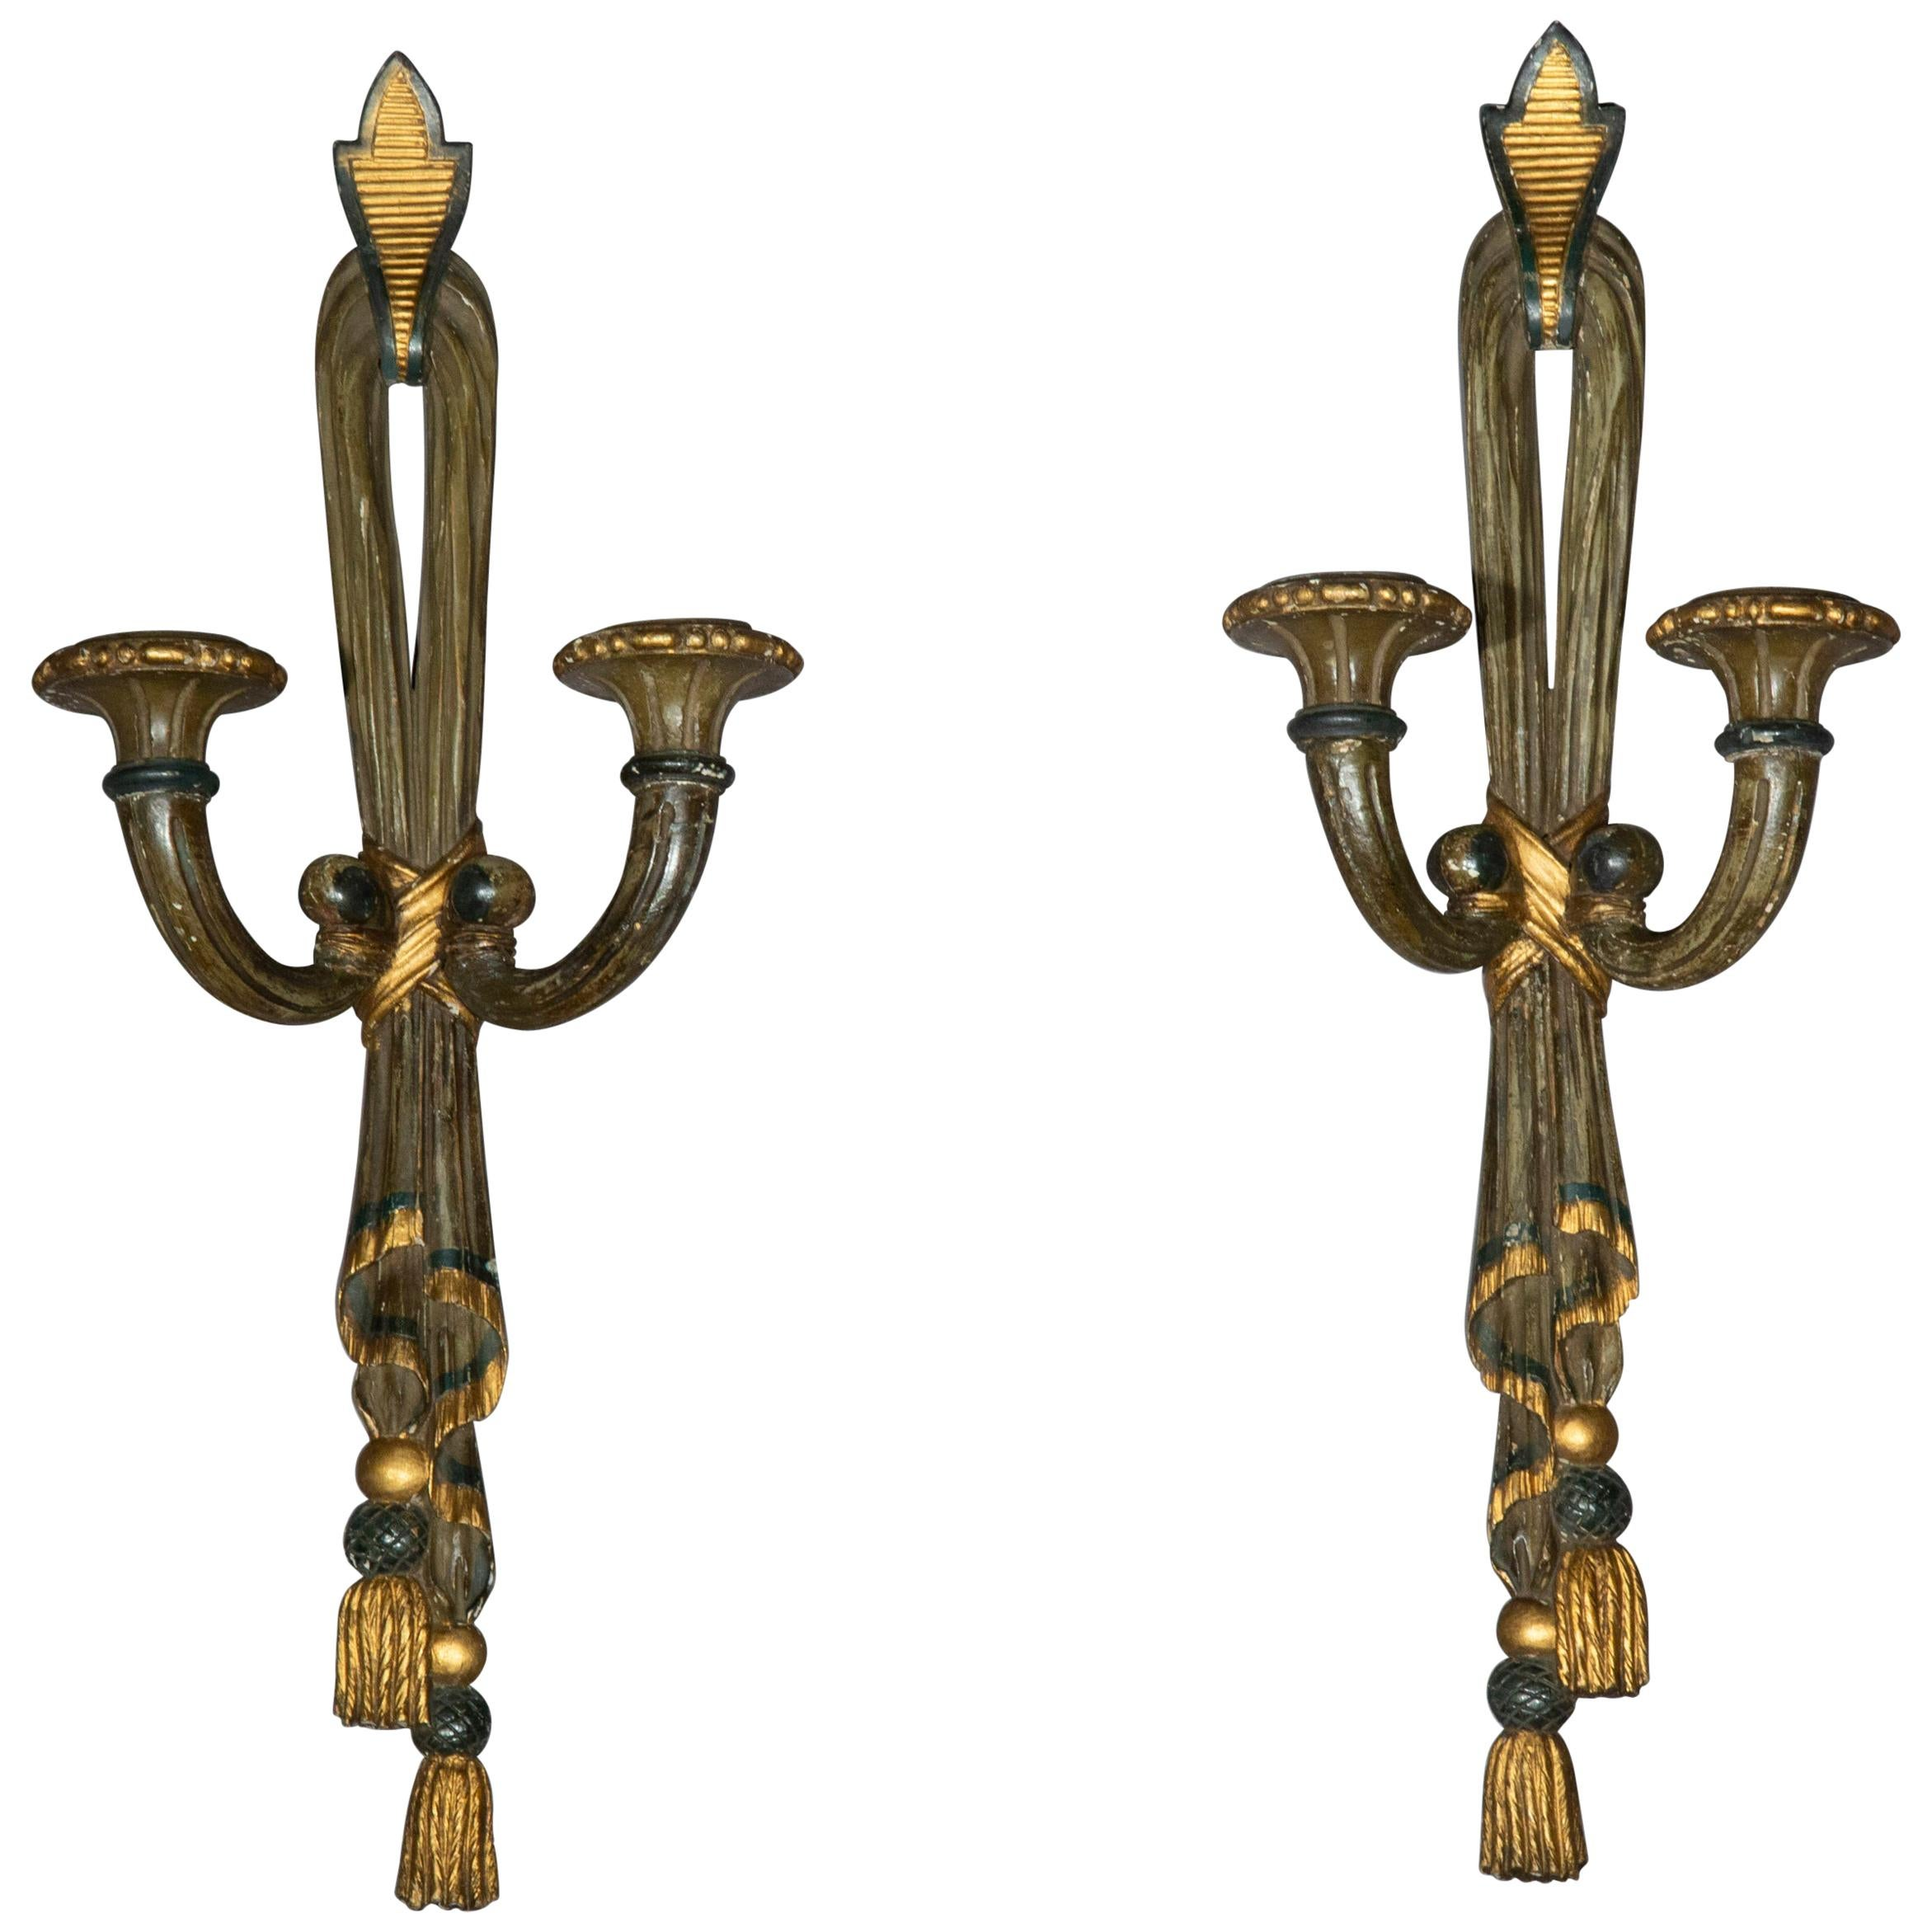 Antique Pair of Painted Neoclassical Wall Lights or Sconces, 19th Century